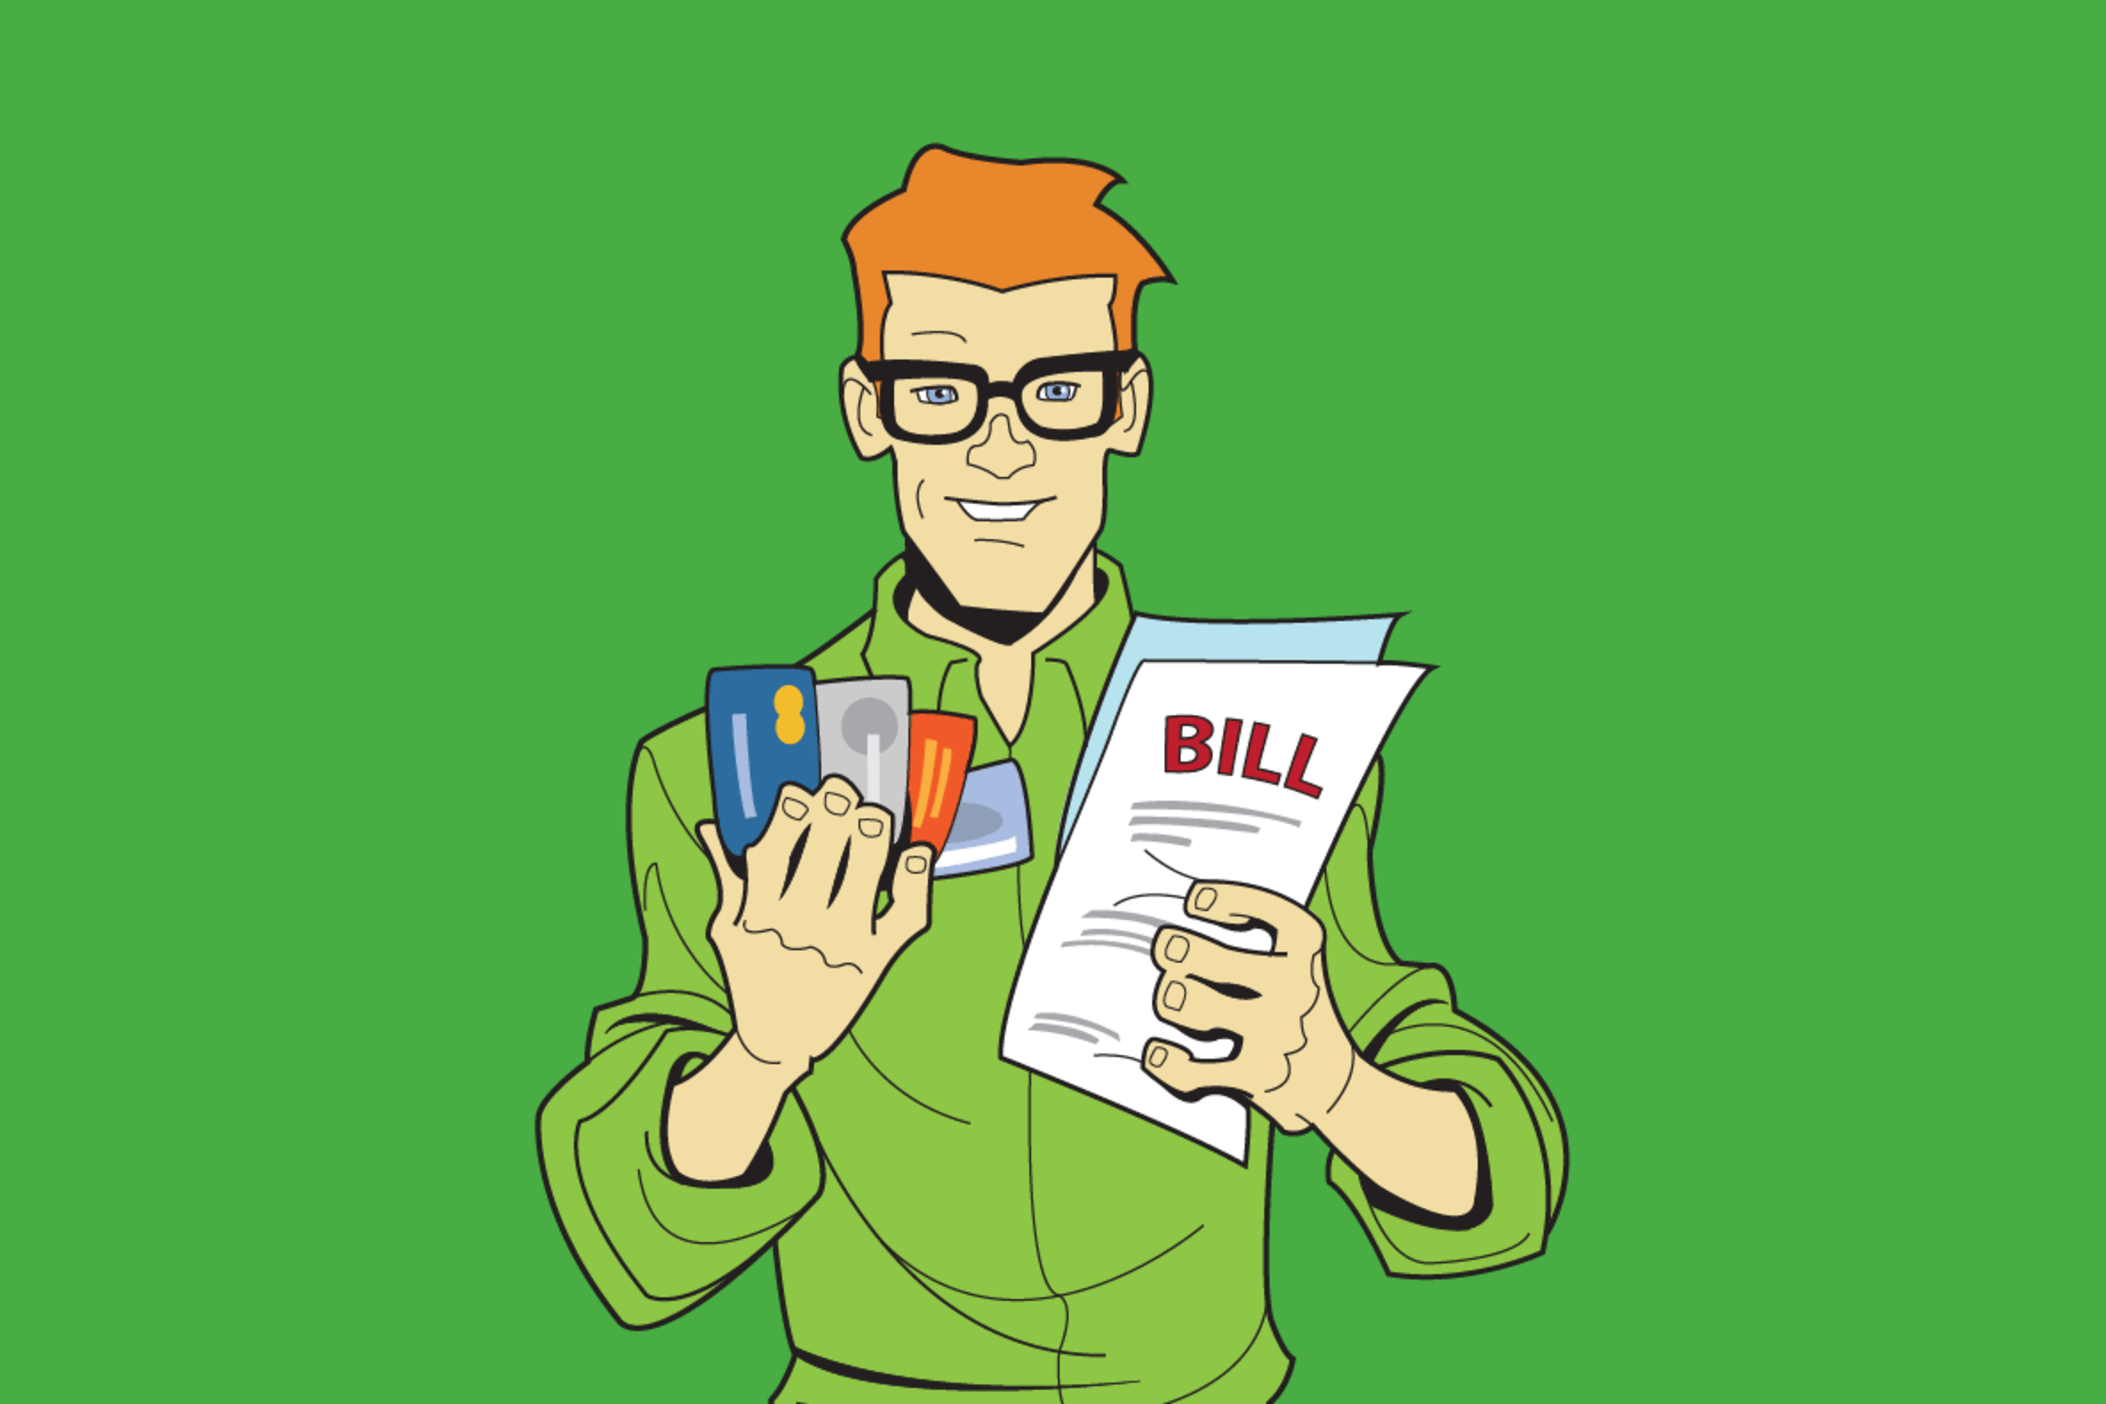 Consumer Ed with credit cards and bills